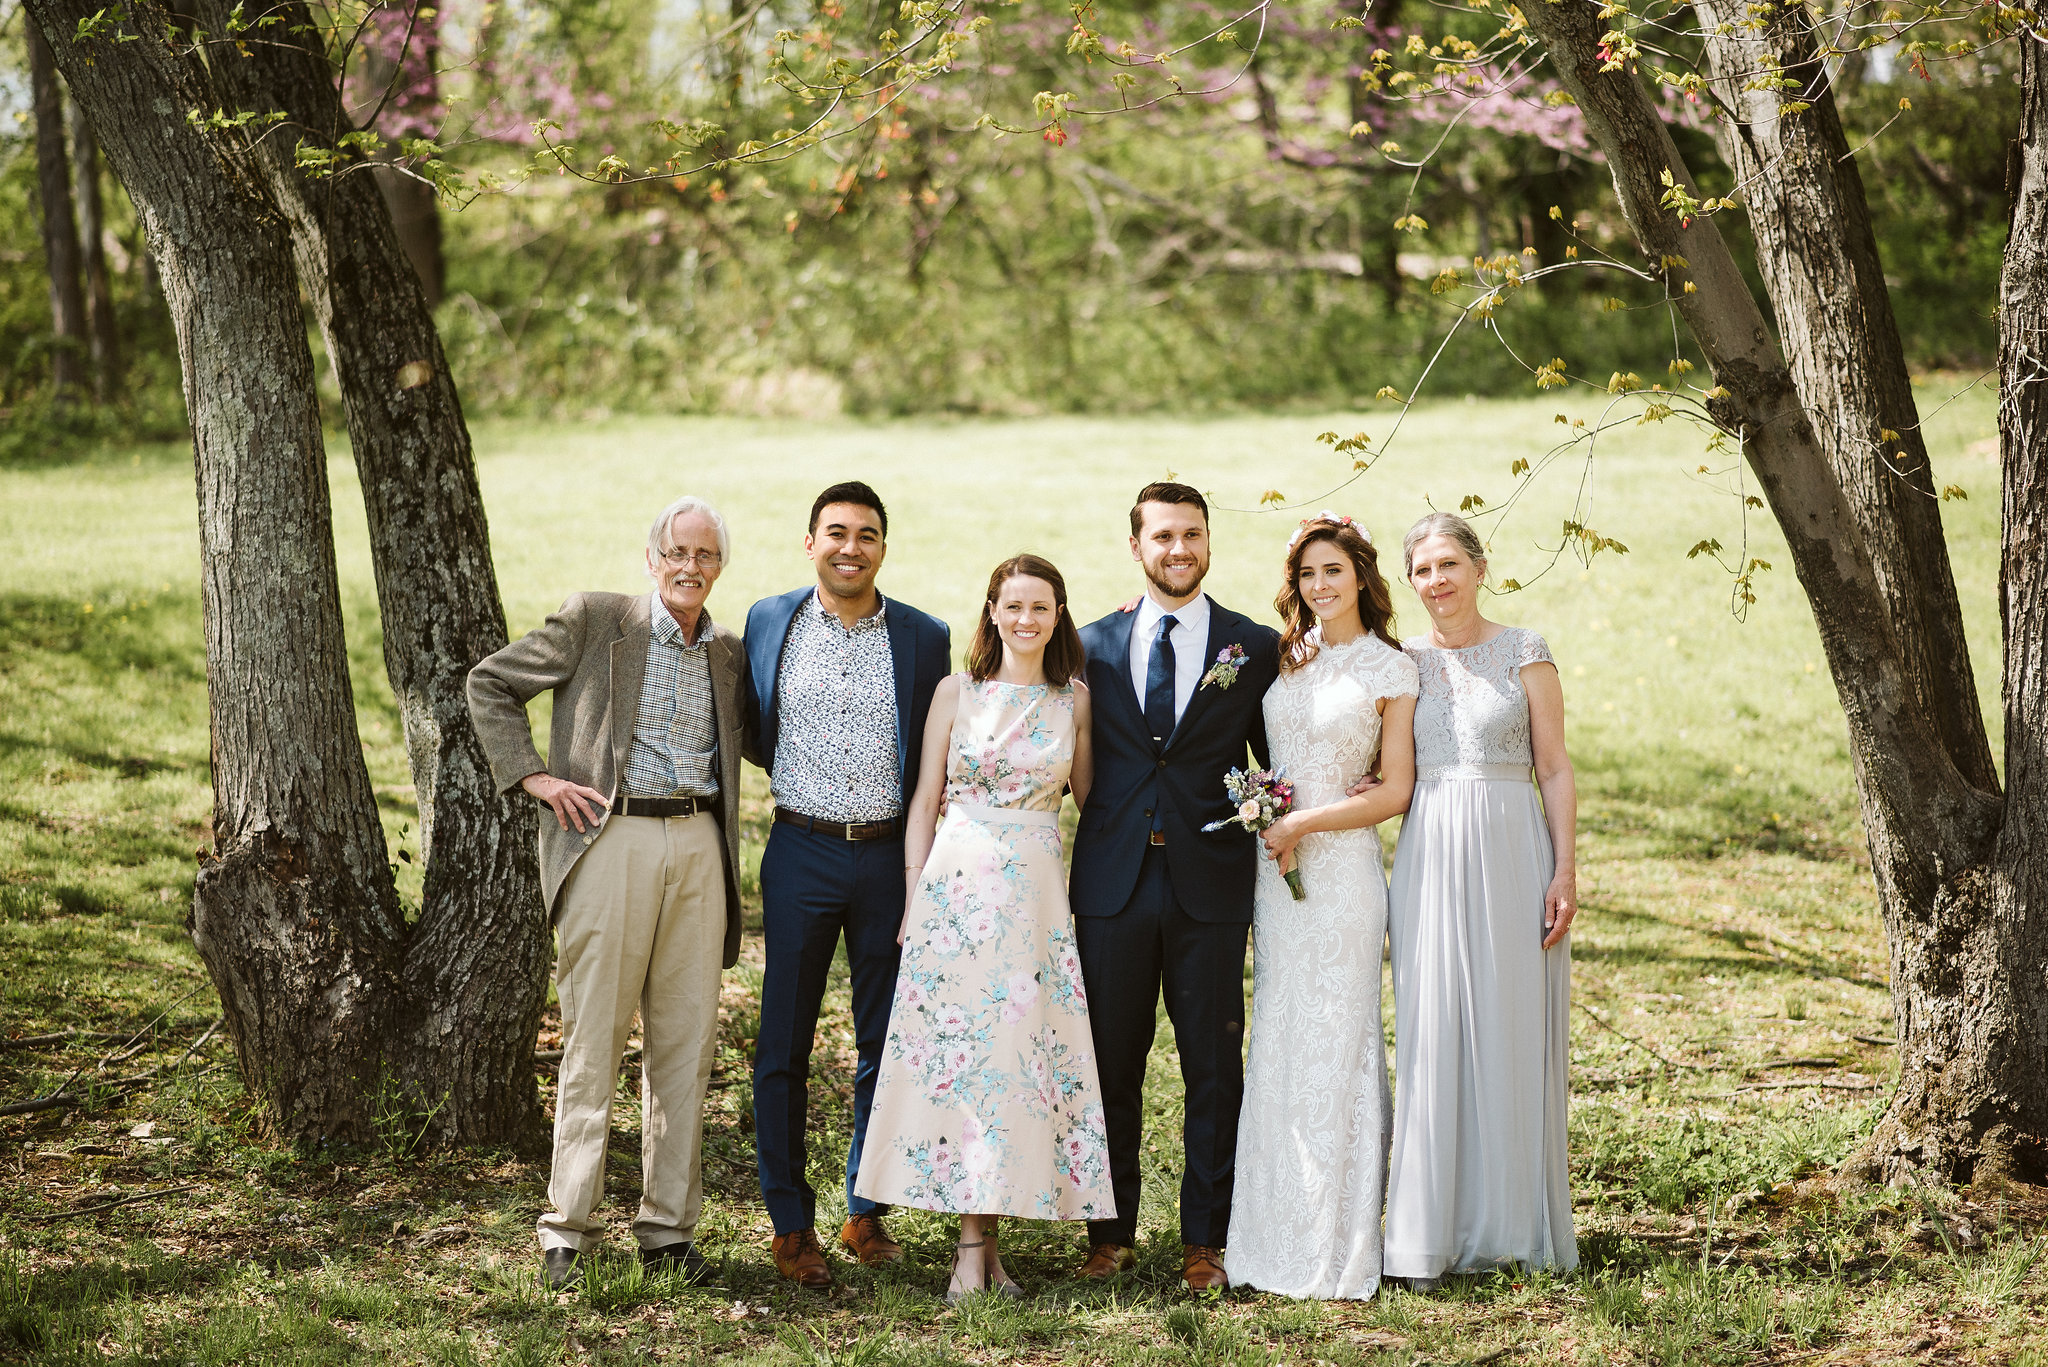 Spring Outdoor Wedding, Park, Baltimore Wedding Photographer, DIY, Classic, Upcycled, Garden Party, Romantic, Portrait of Bride and Groom with Family, BHLDN Wedding Dress, Suit Supply